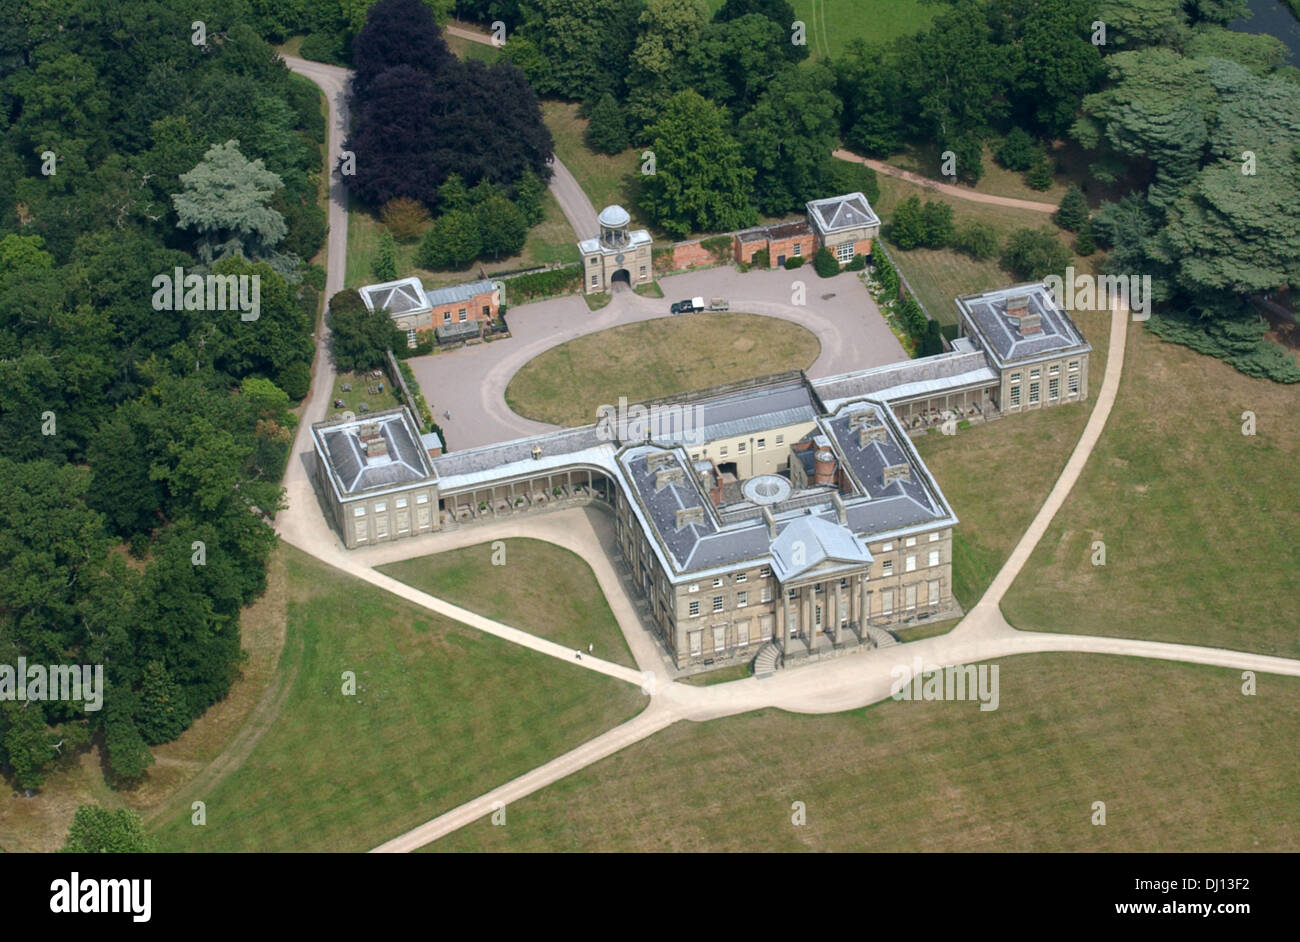 Aerial View Of House And Property